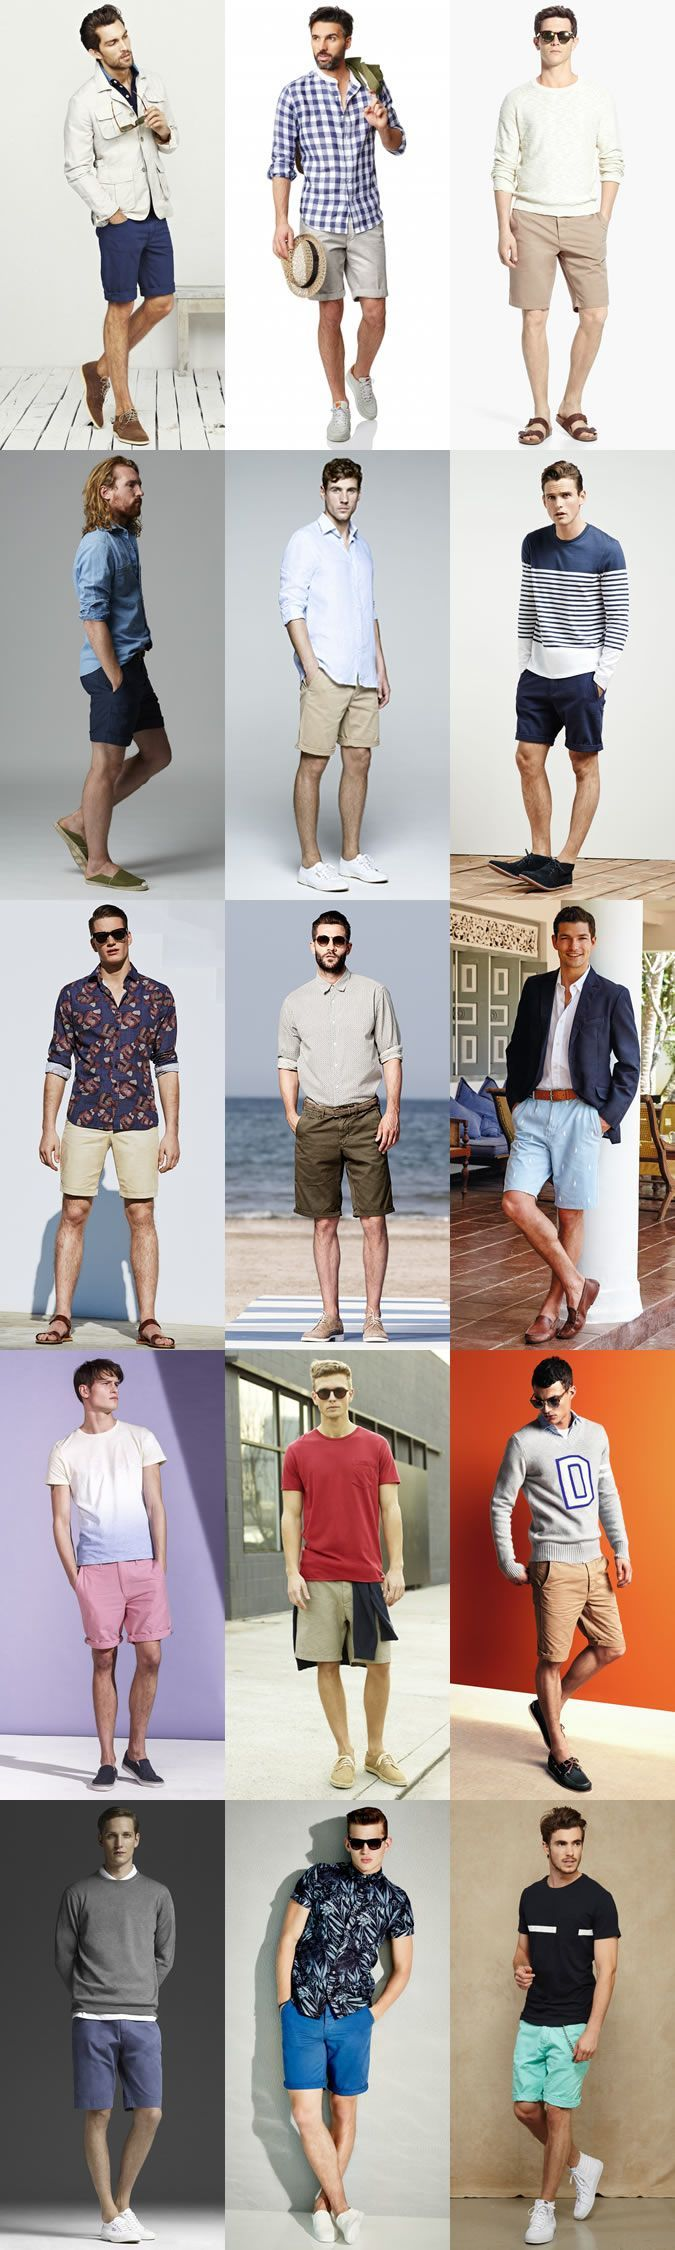 Shorts & Shoes Combinations ##MensFashion #Menswear